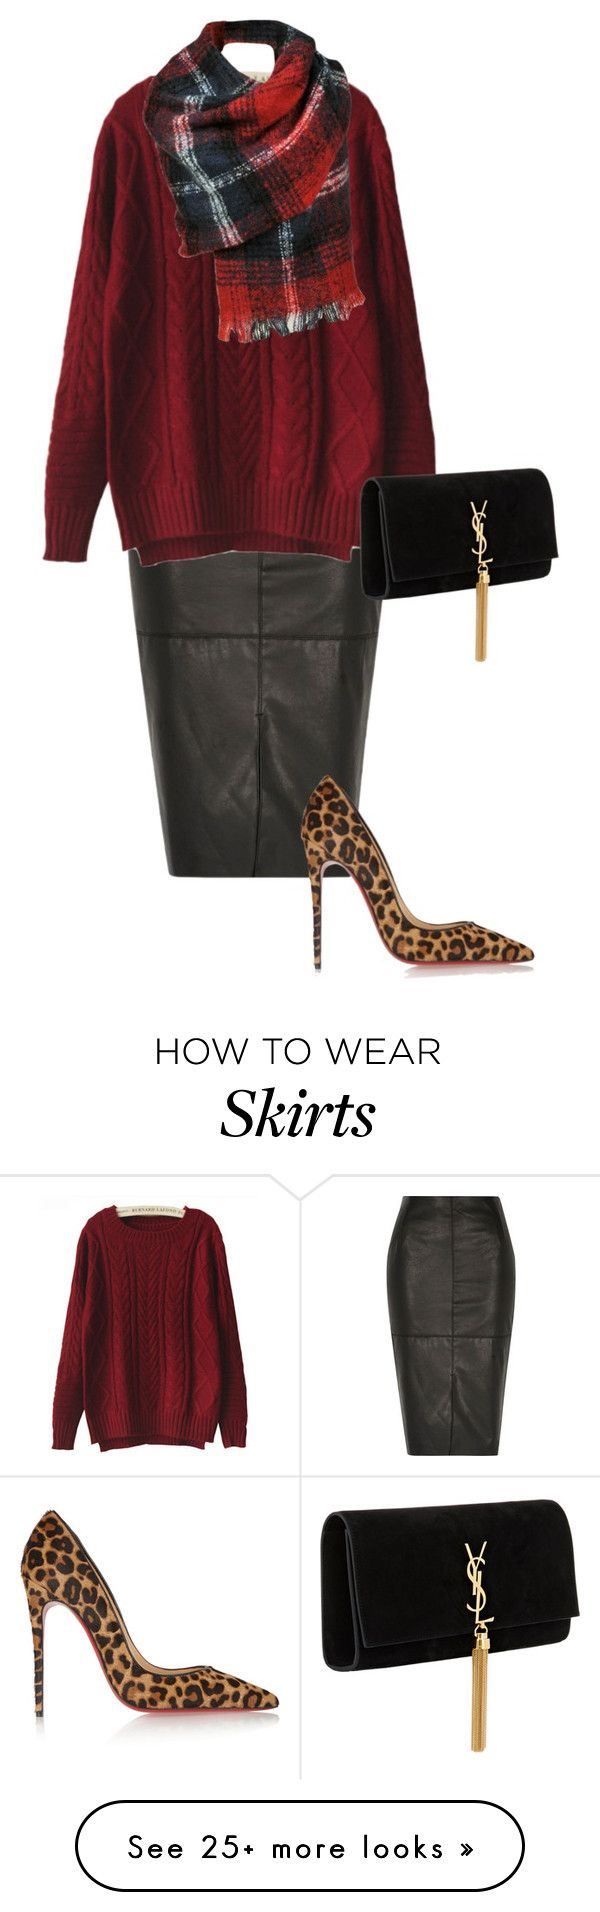 """""""leather skirt"""" by part-time-fashionista on Polyvore featuring River Island, Chicnova Fashion, Christian Louboutin, Black Rivet and Yves Saint Laurent"""